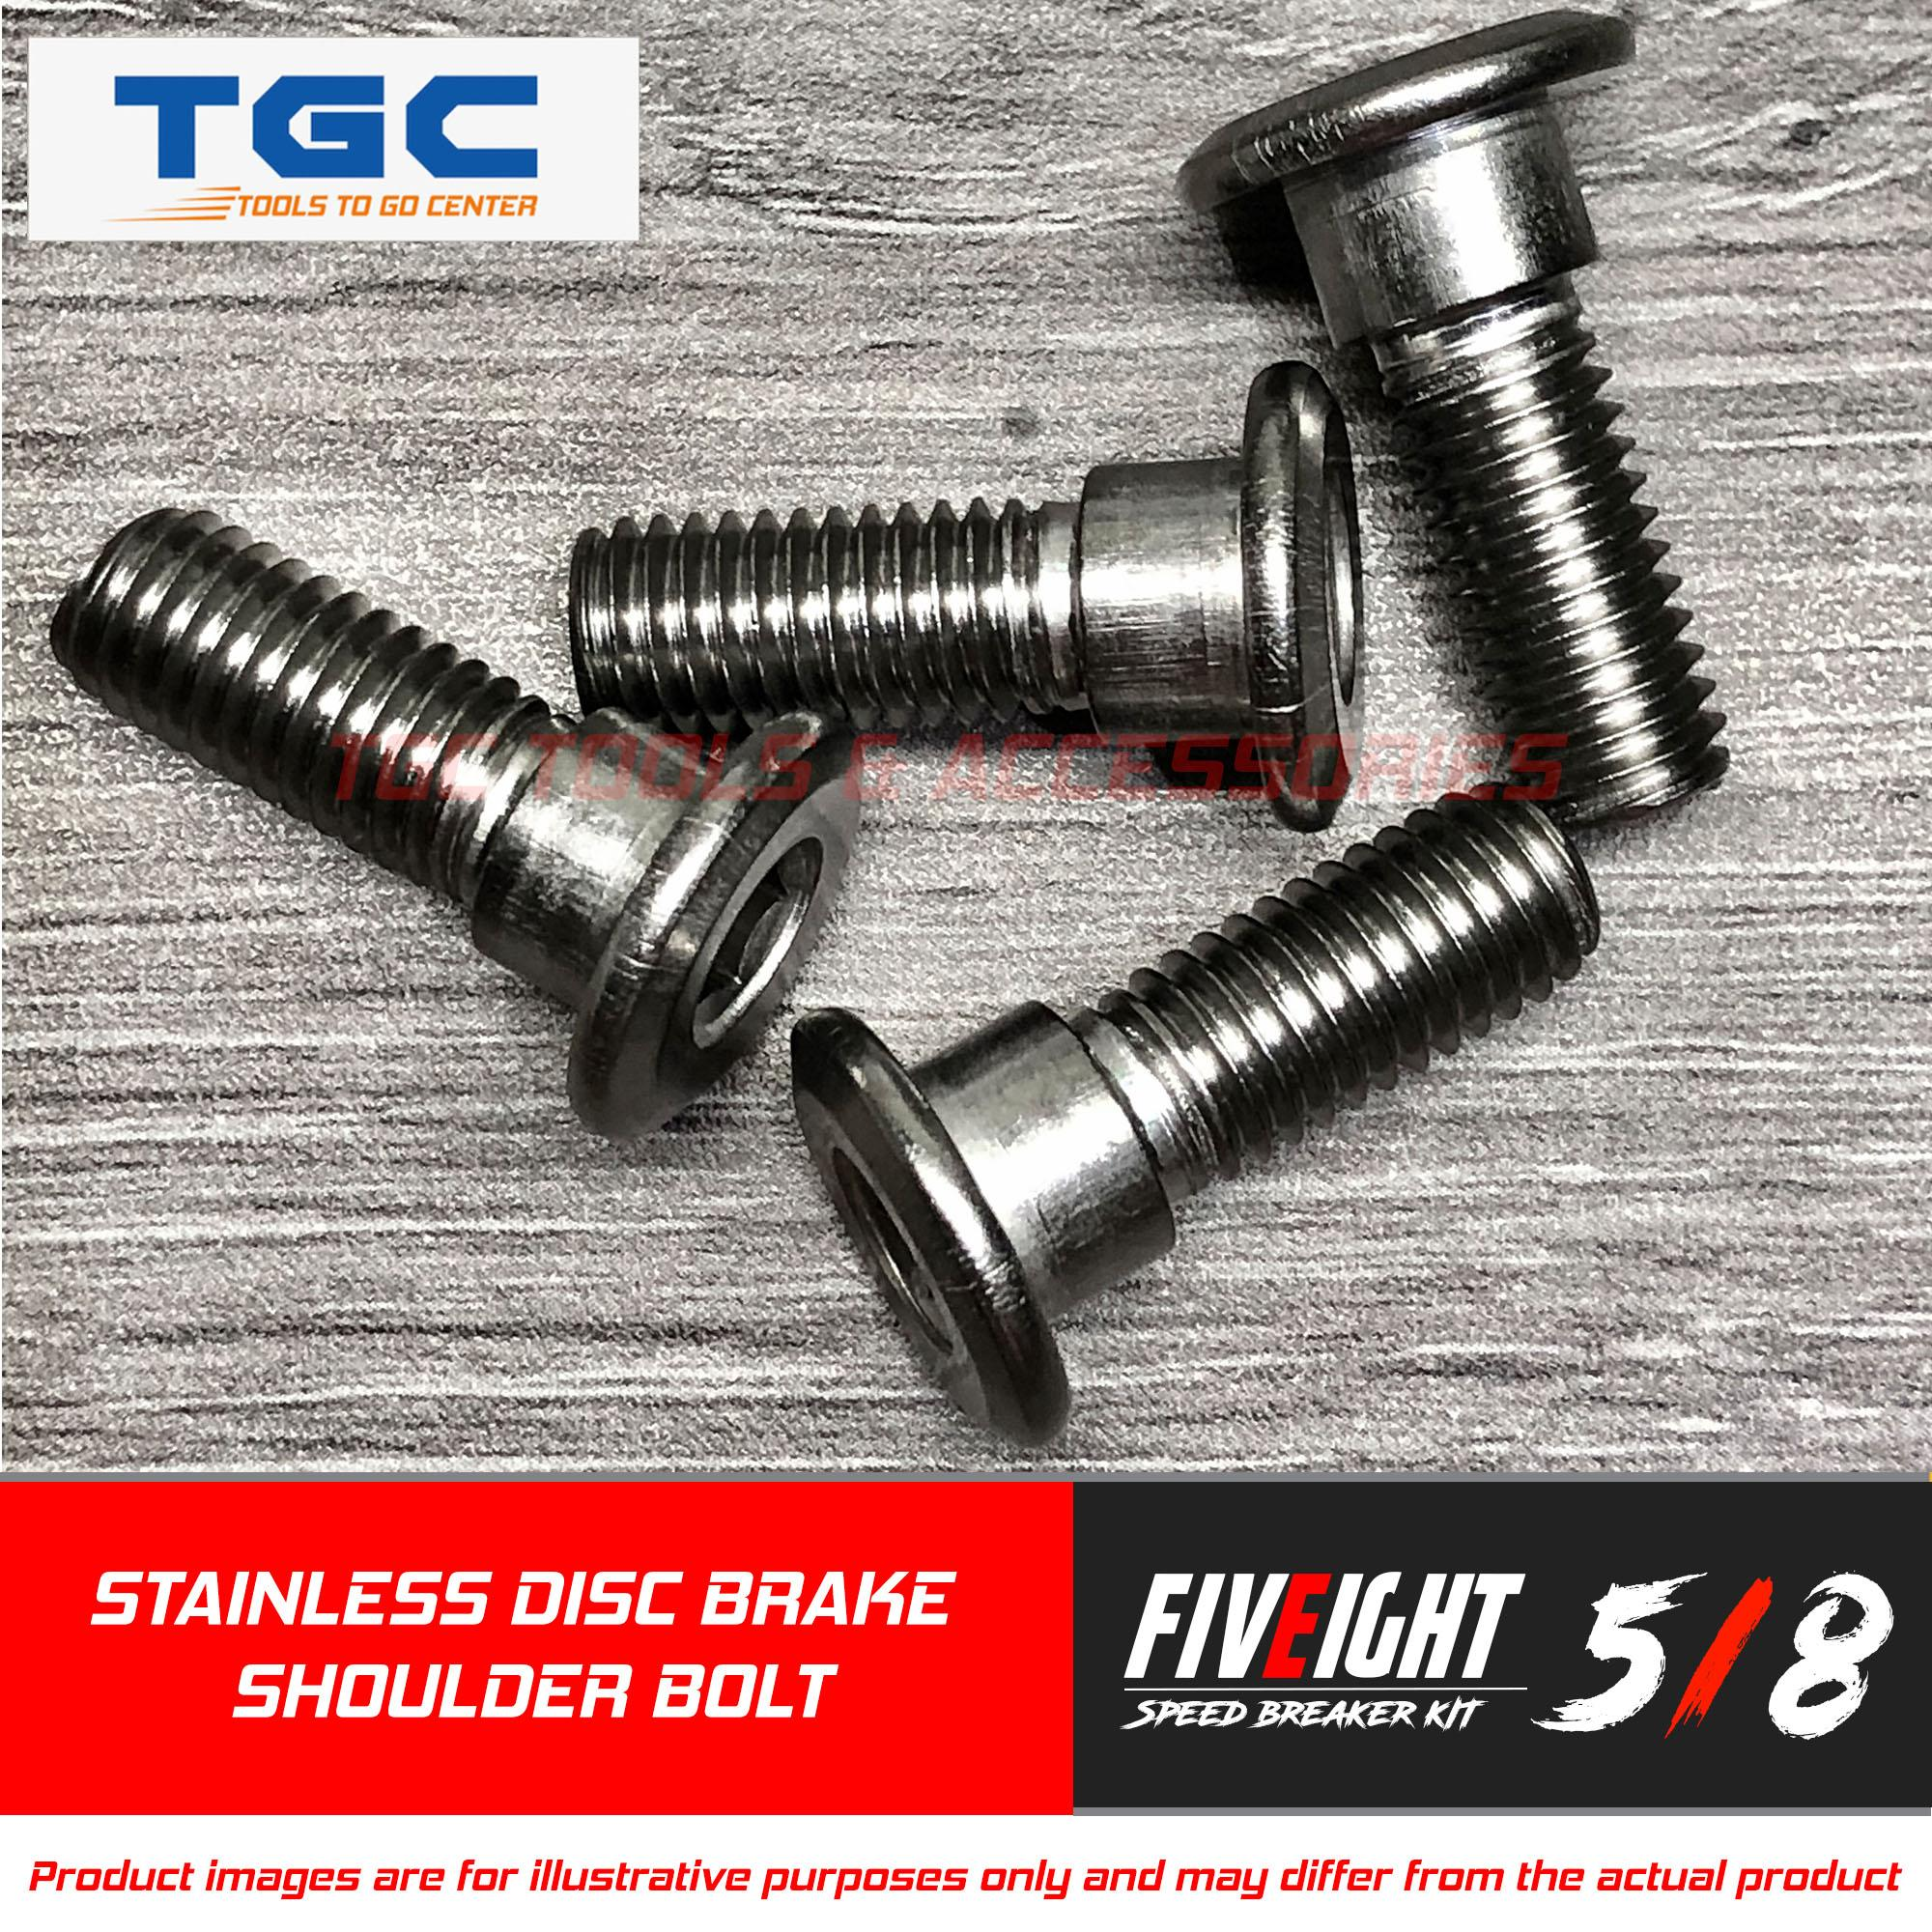 Five Eight Speed 4PCS Disc Bolt Stainless Shoulder Type (M 8 x 1 25P x 24  mm) for Honda and Suzuki Motorcycles Disc Brake Shoulder Bolt TGC